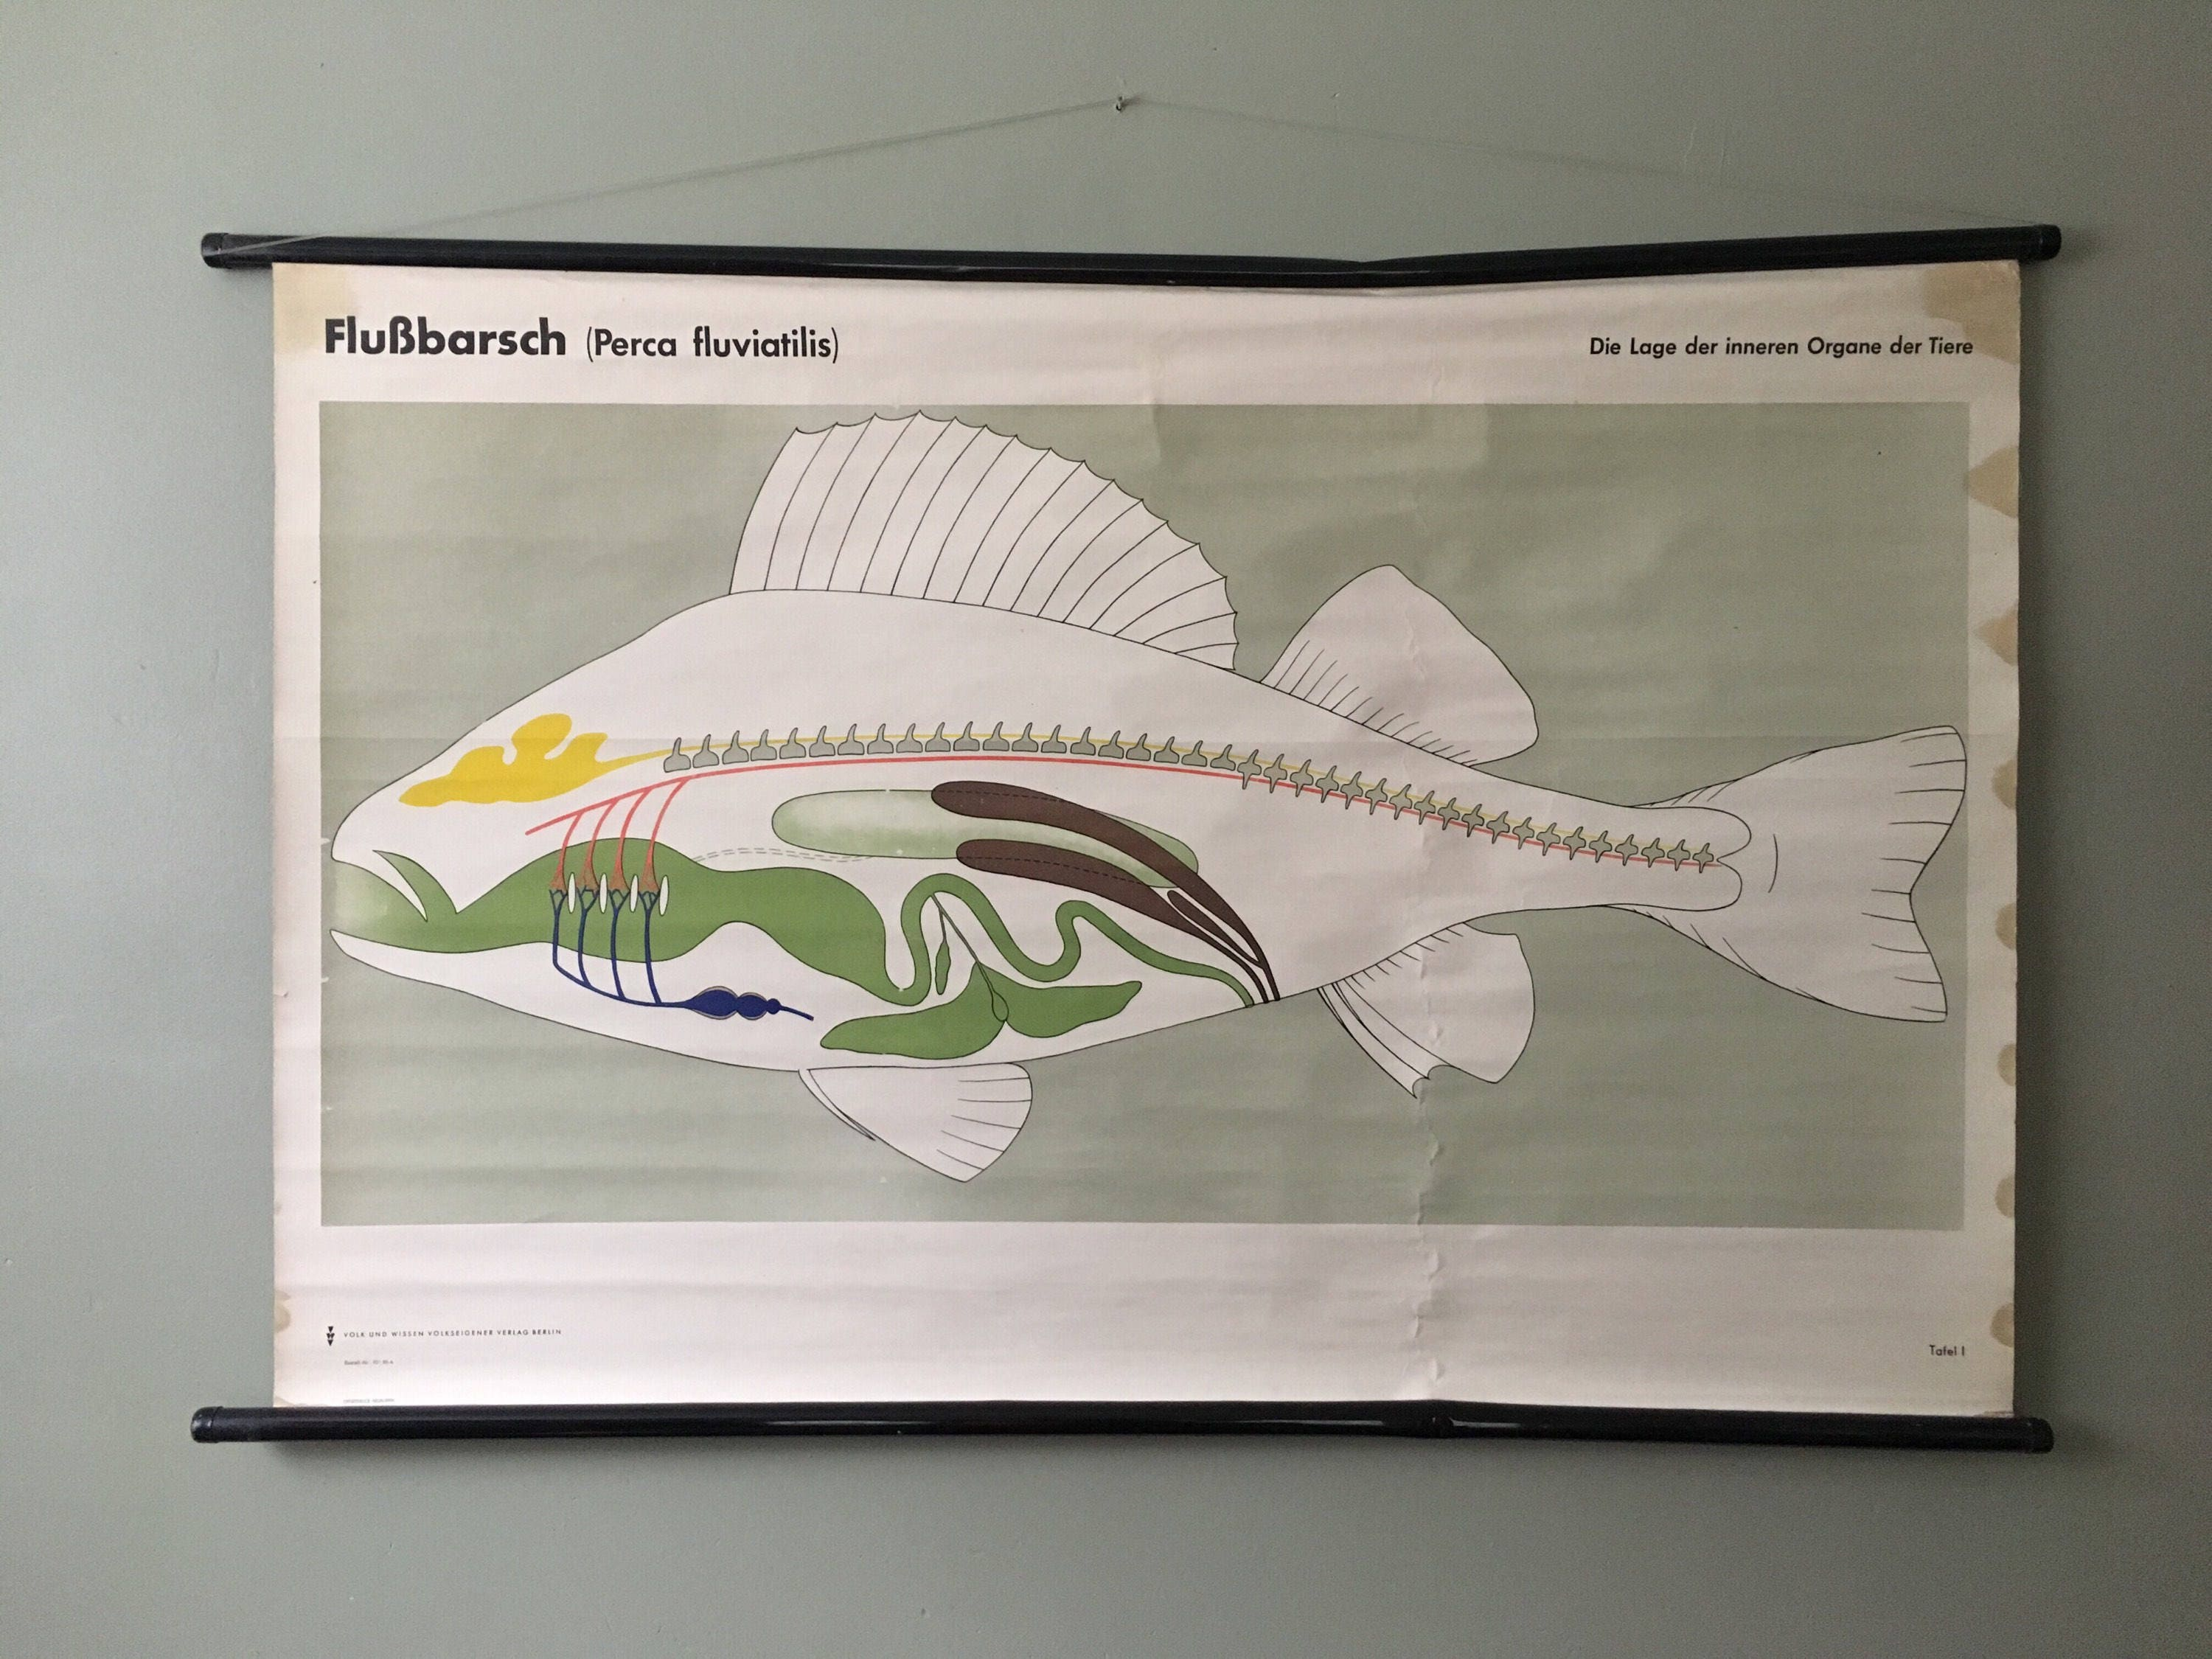 Vintage east german educational chart roll down poster of the vintage east german educational chart roll down poster of the internal organs of a river perch fish by volk und wissen berlin ccuart Images